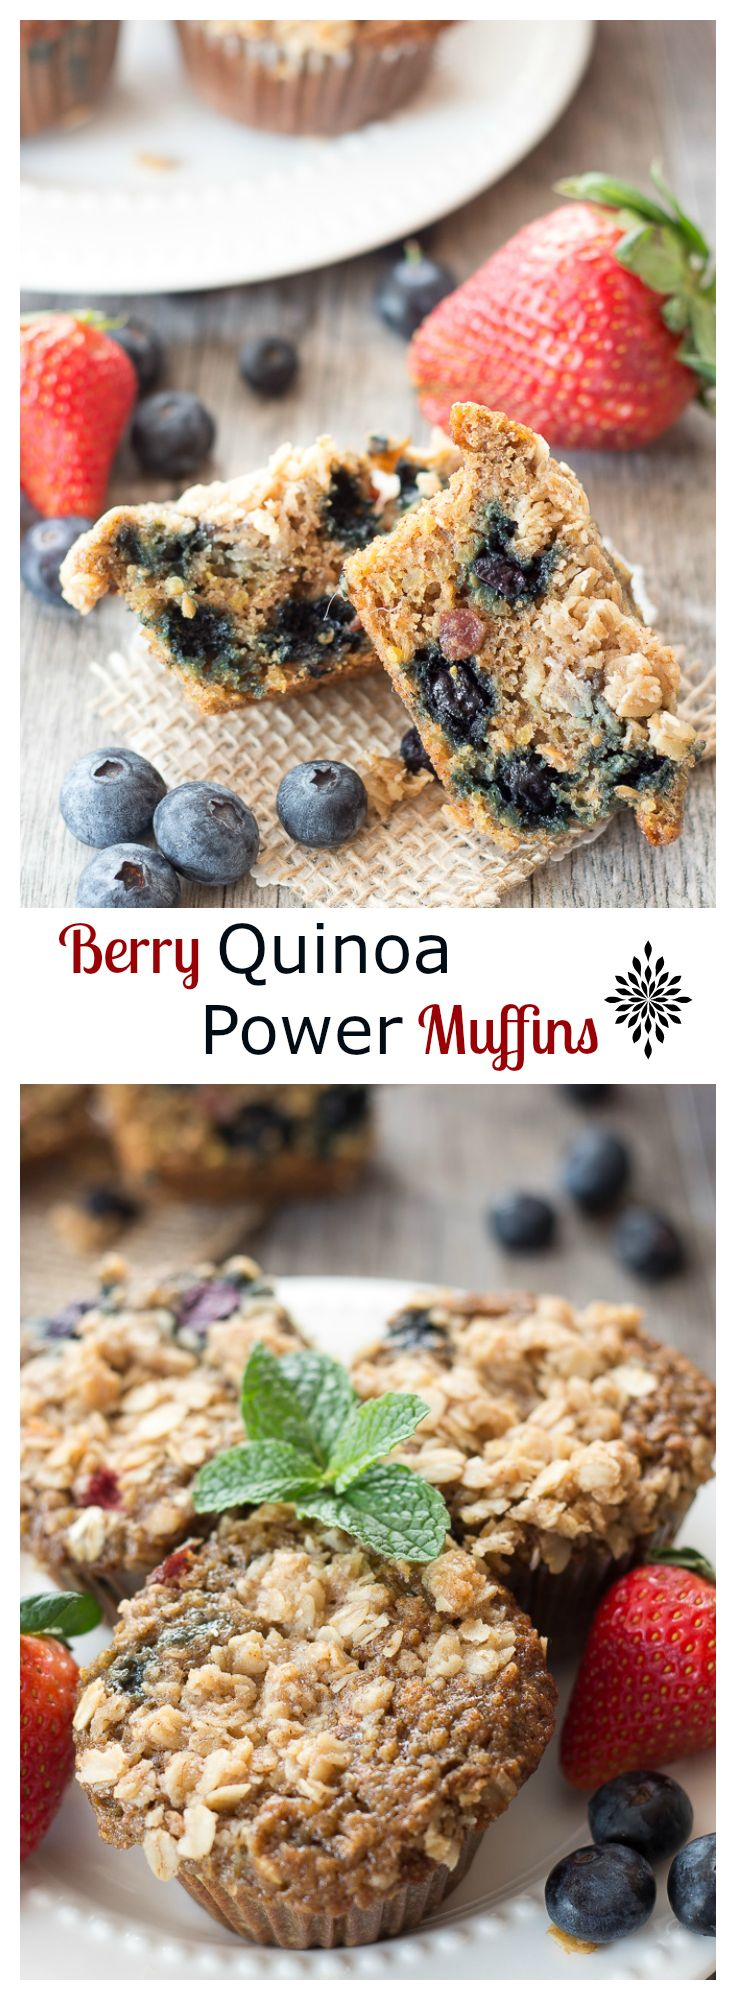 A healthy breakfast power muffin filled with juicy berries, quinoa, and oatmeal. Everything you need to start your day and to leave you feeling satisfied till lunch time. Protein packed!